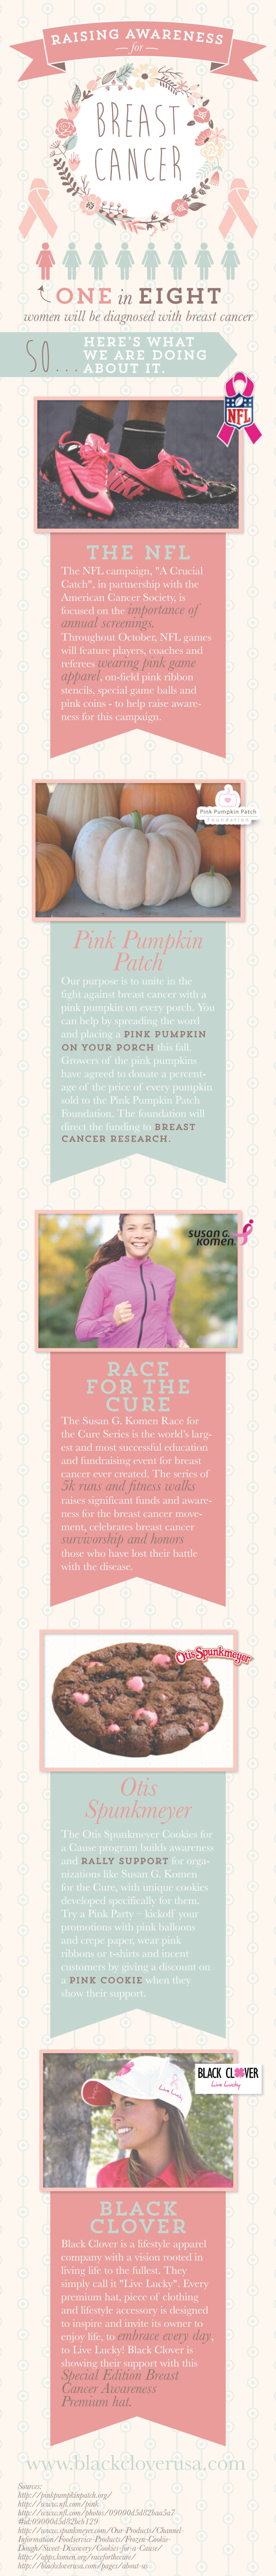 Raising Awareness for Breast Cancer Infographic